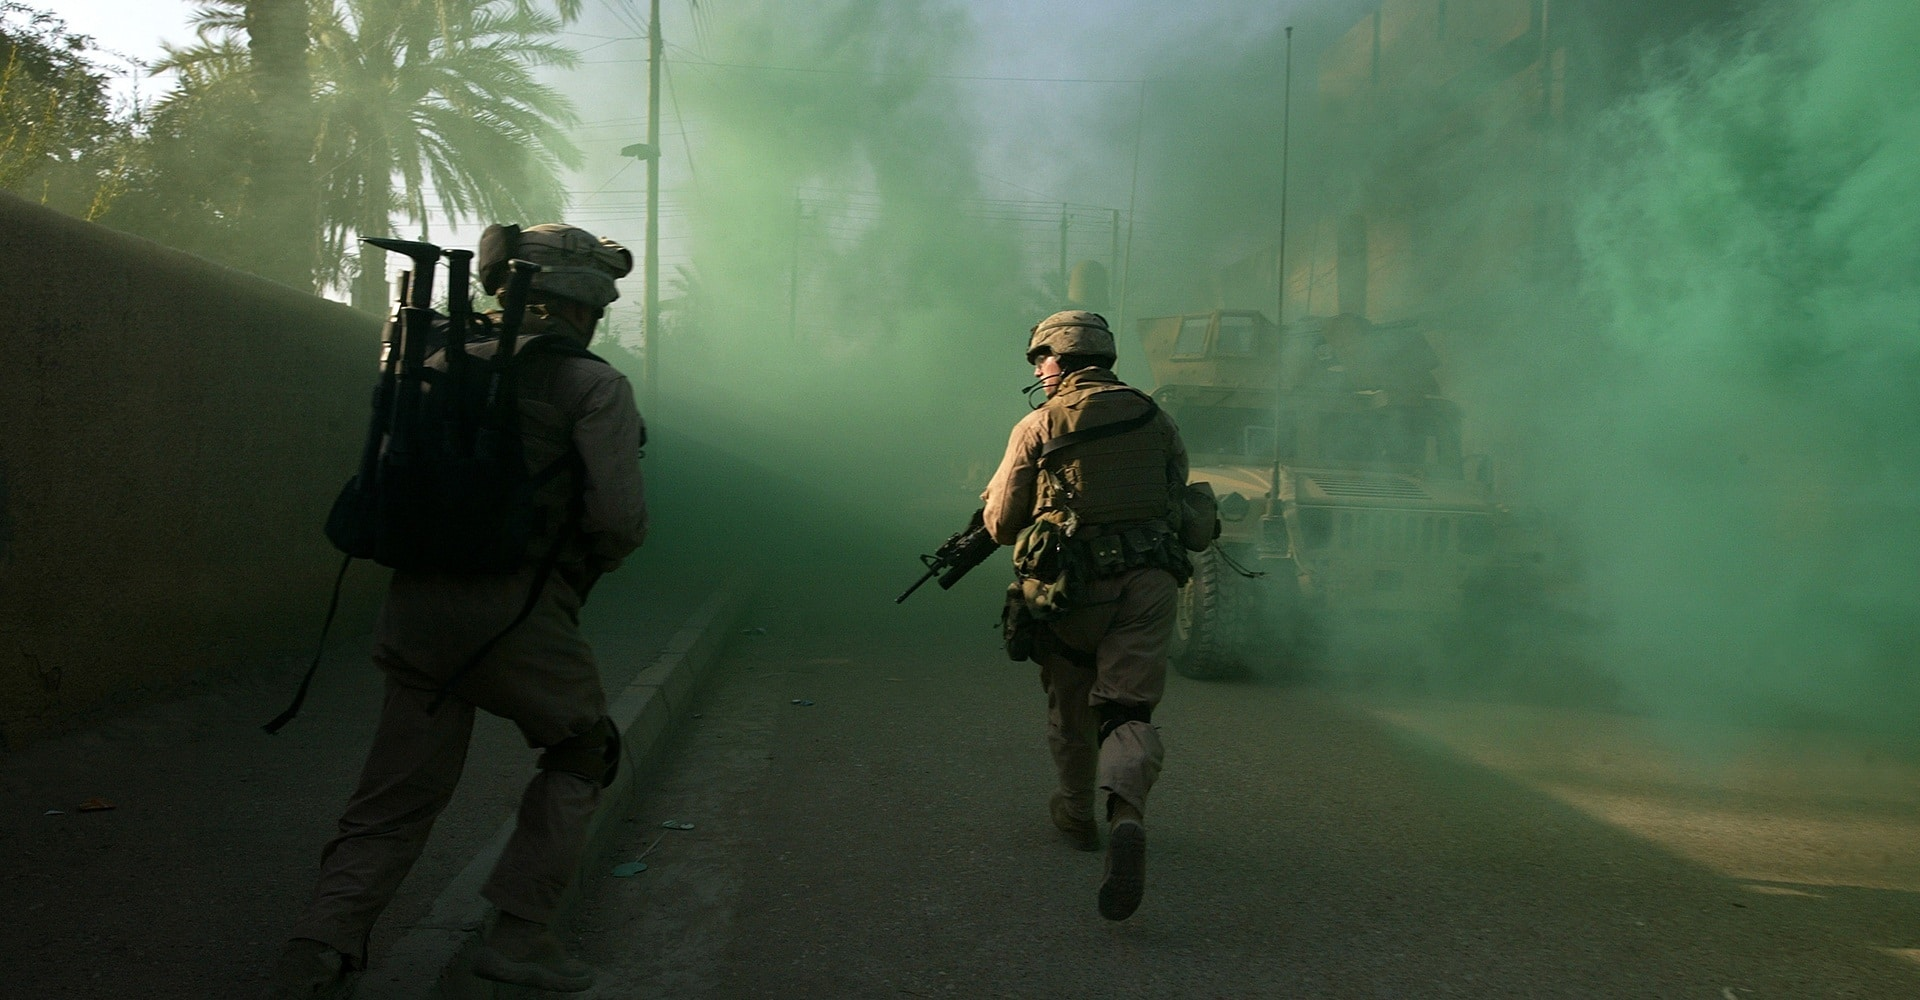 War/Photography: Images of Armed Conflict and Its Aftermath